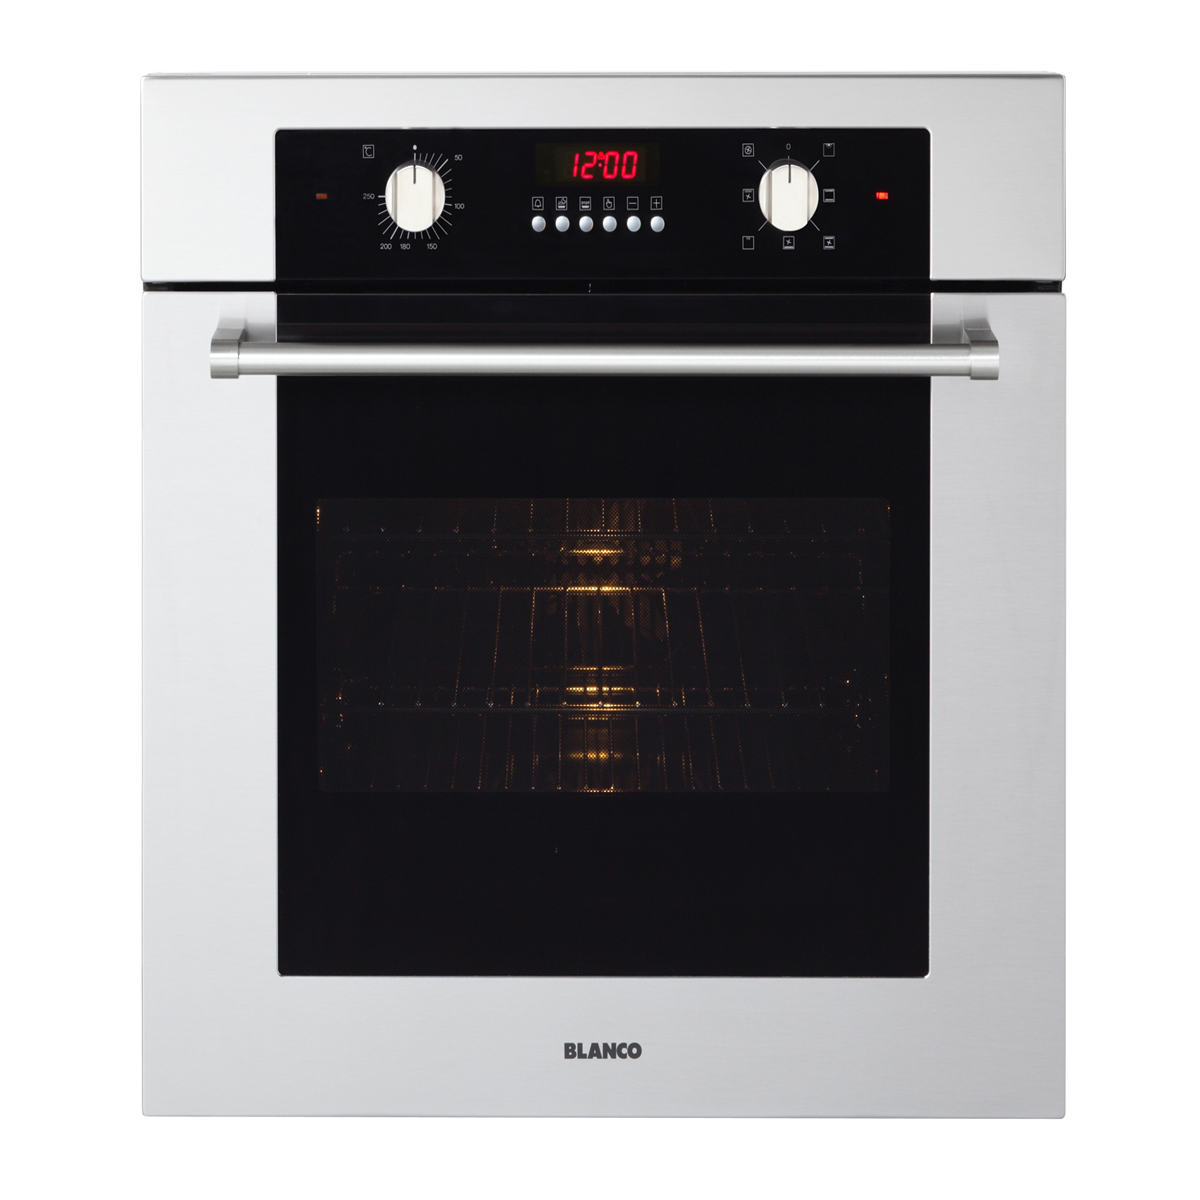 Blanco Electric Oven BOSE607M